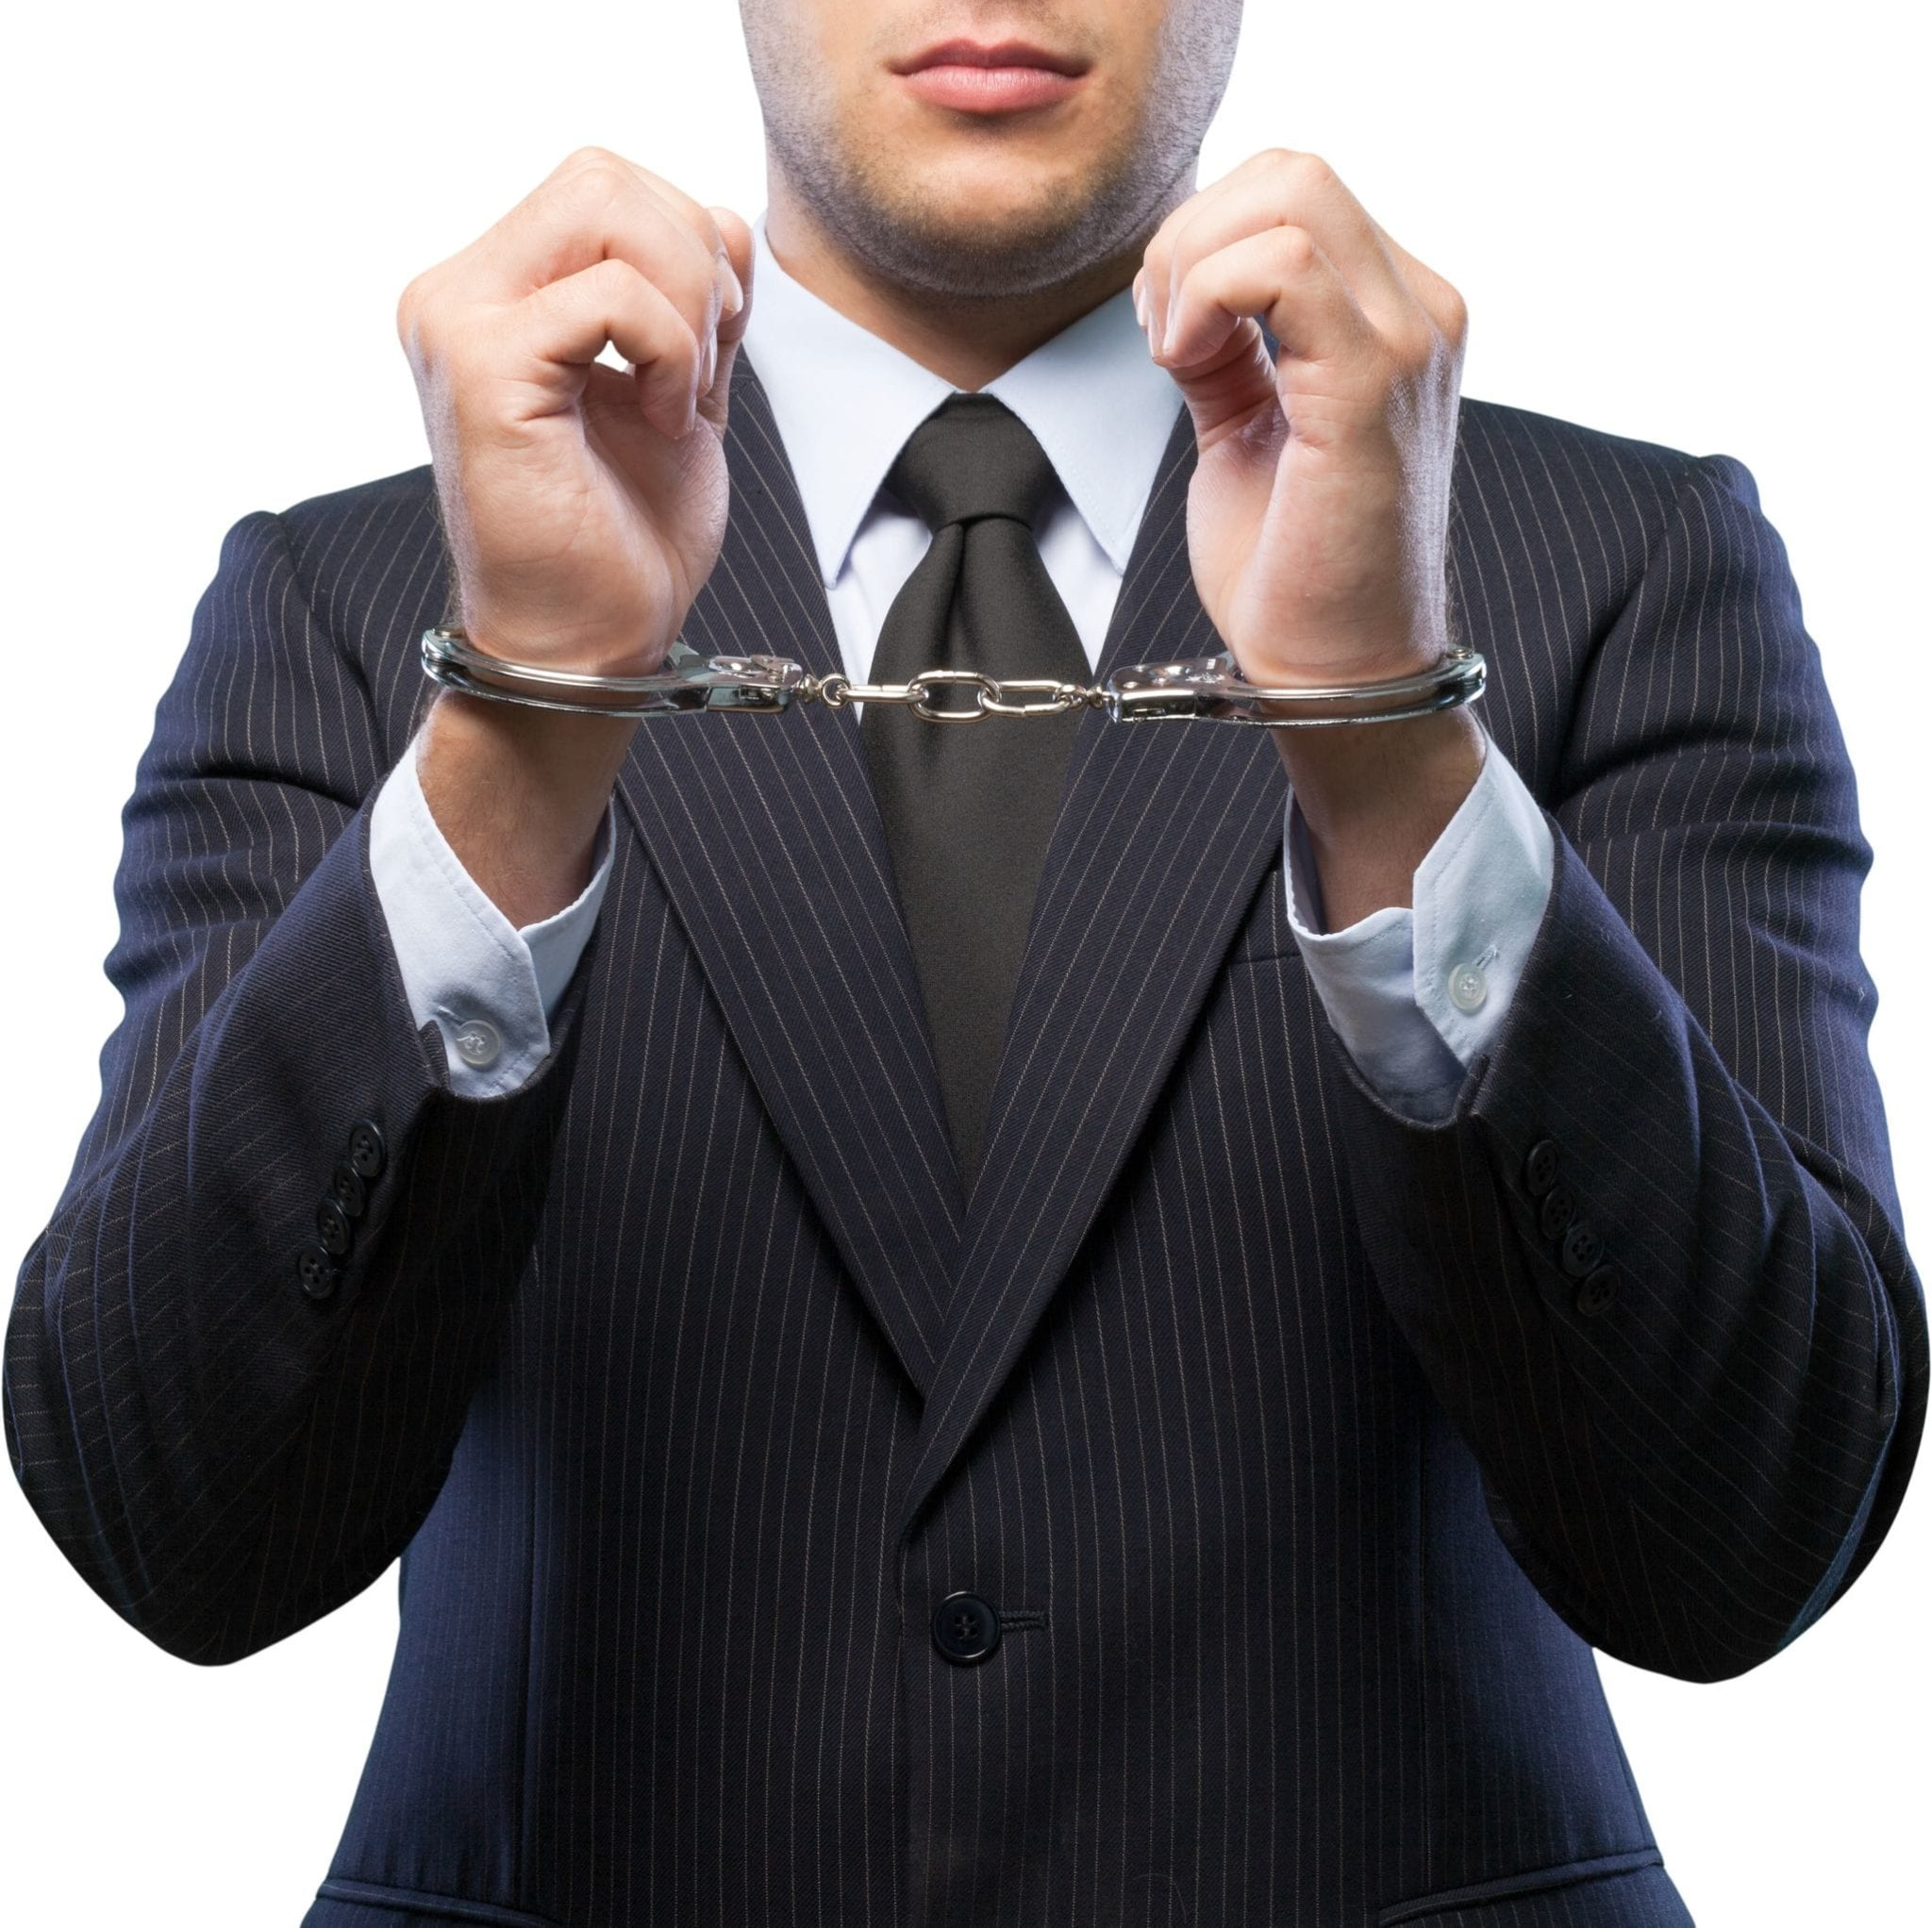 Defending Yourself Against Minnesota Bribery Charges